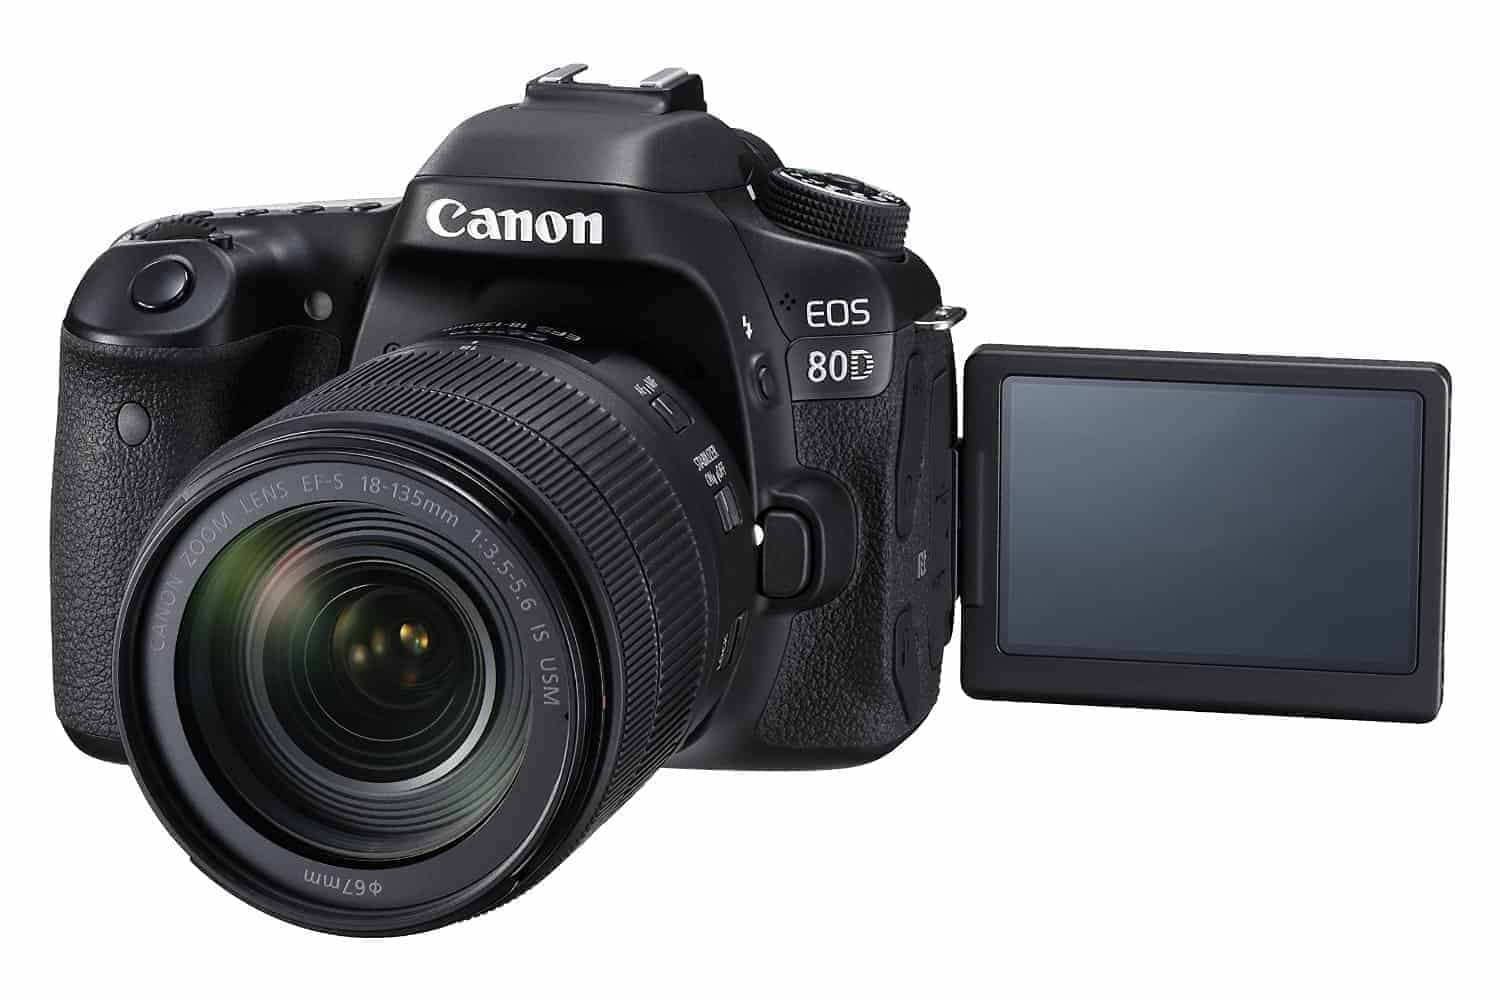 Canon EOS 80D Digital SLR Kit with EF-S 18-135mm f/3.5